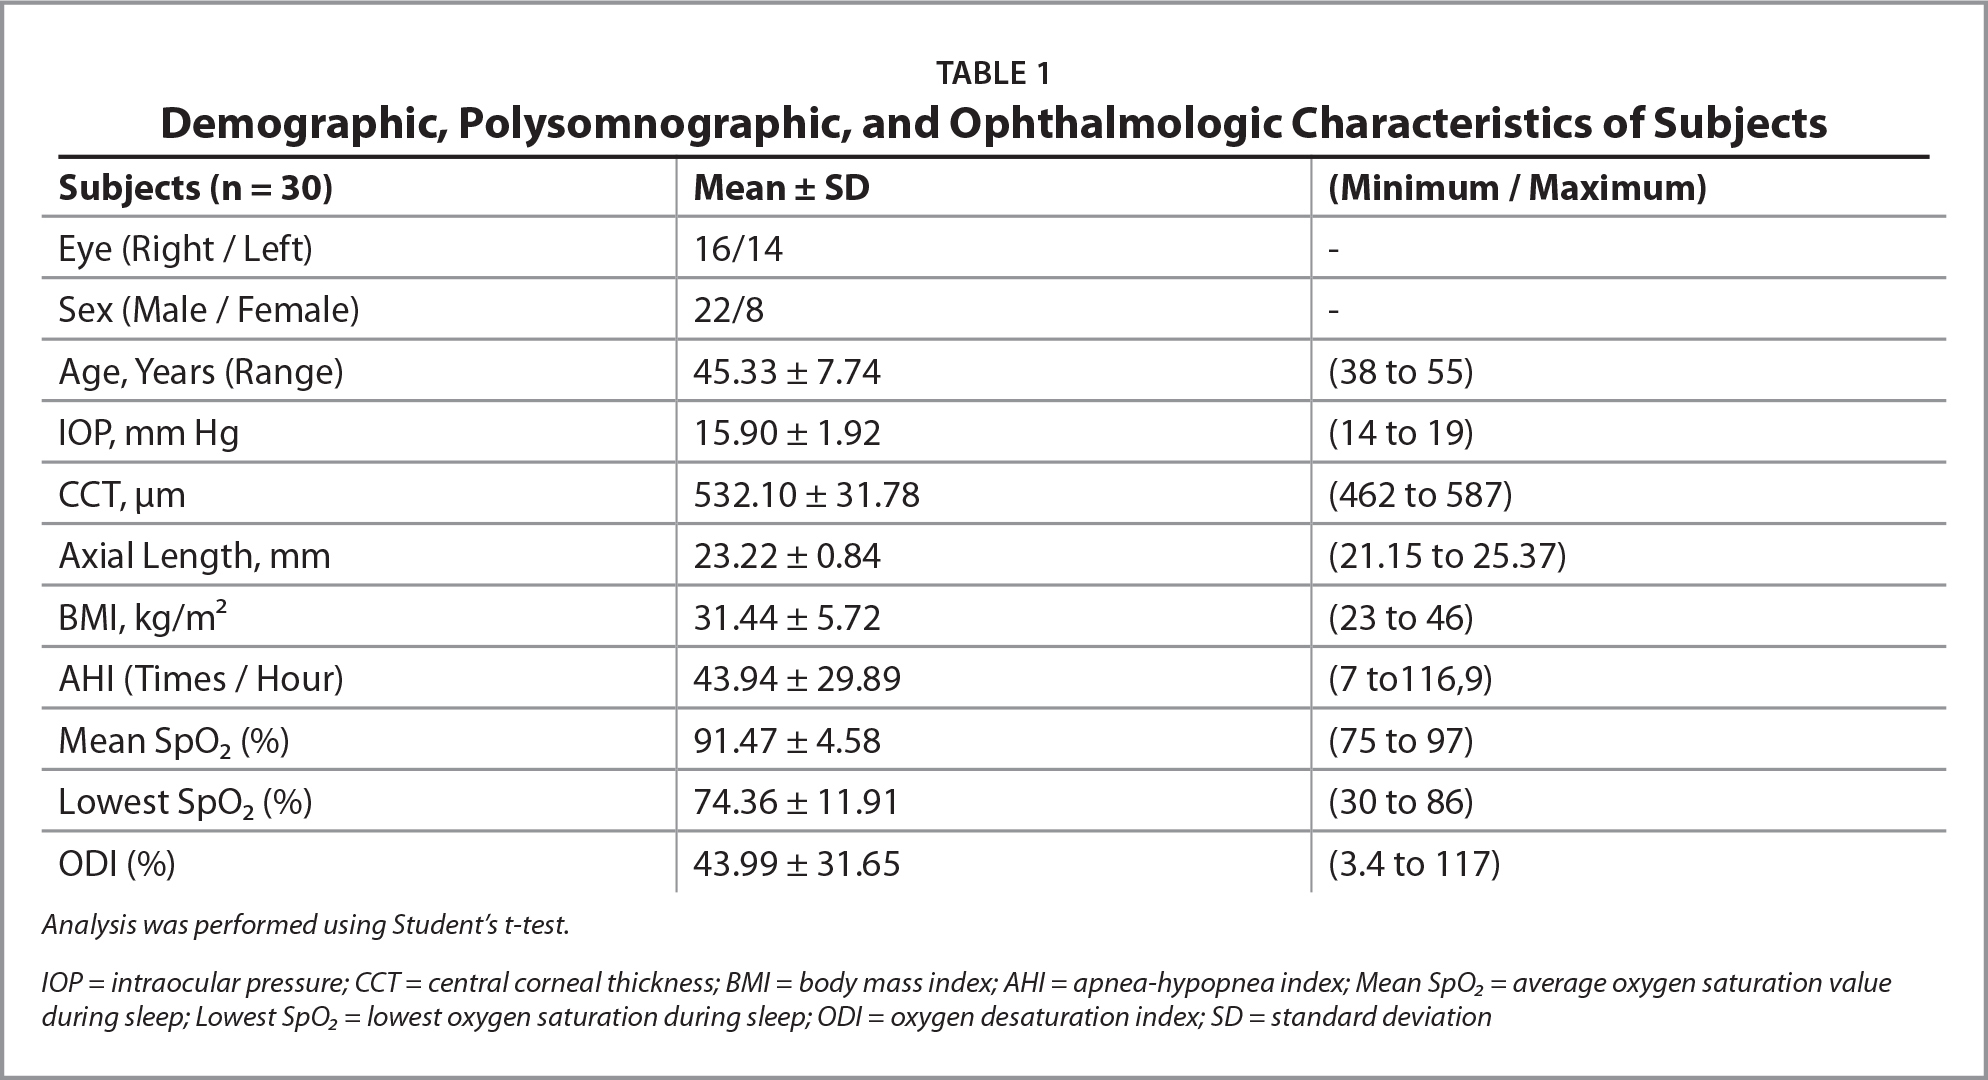 Demographic, Polysomnographic, and Ophthalmologic Characteristics of Subjects